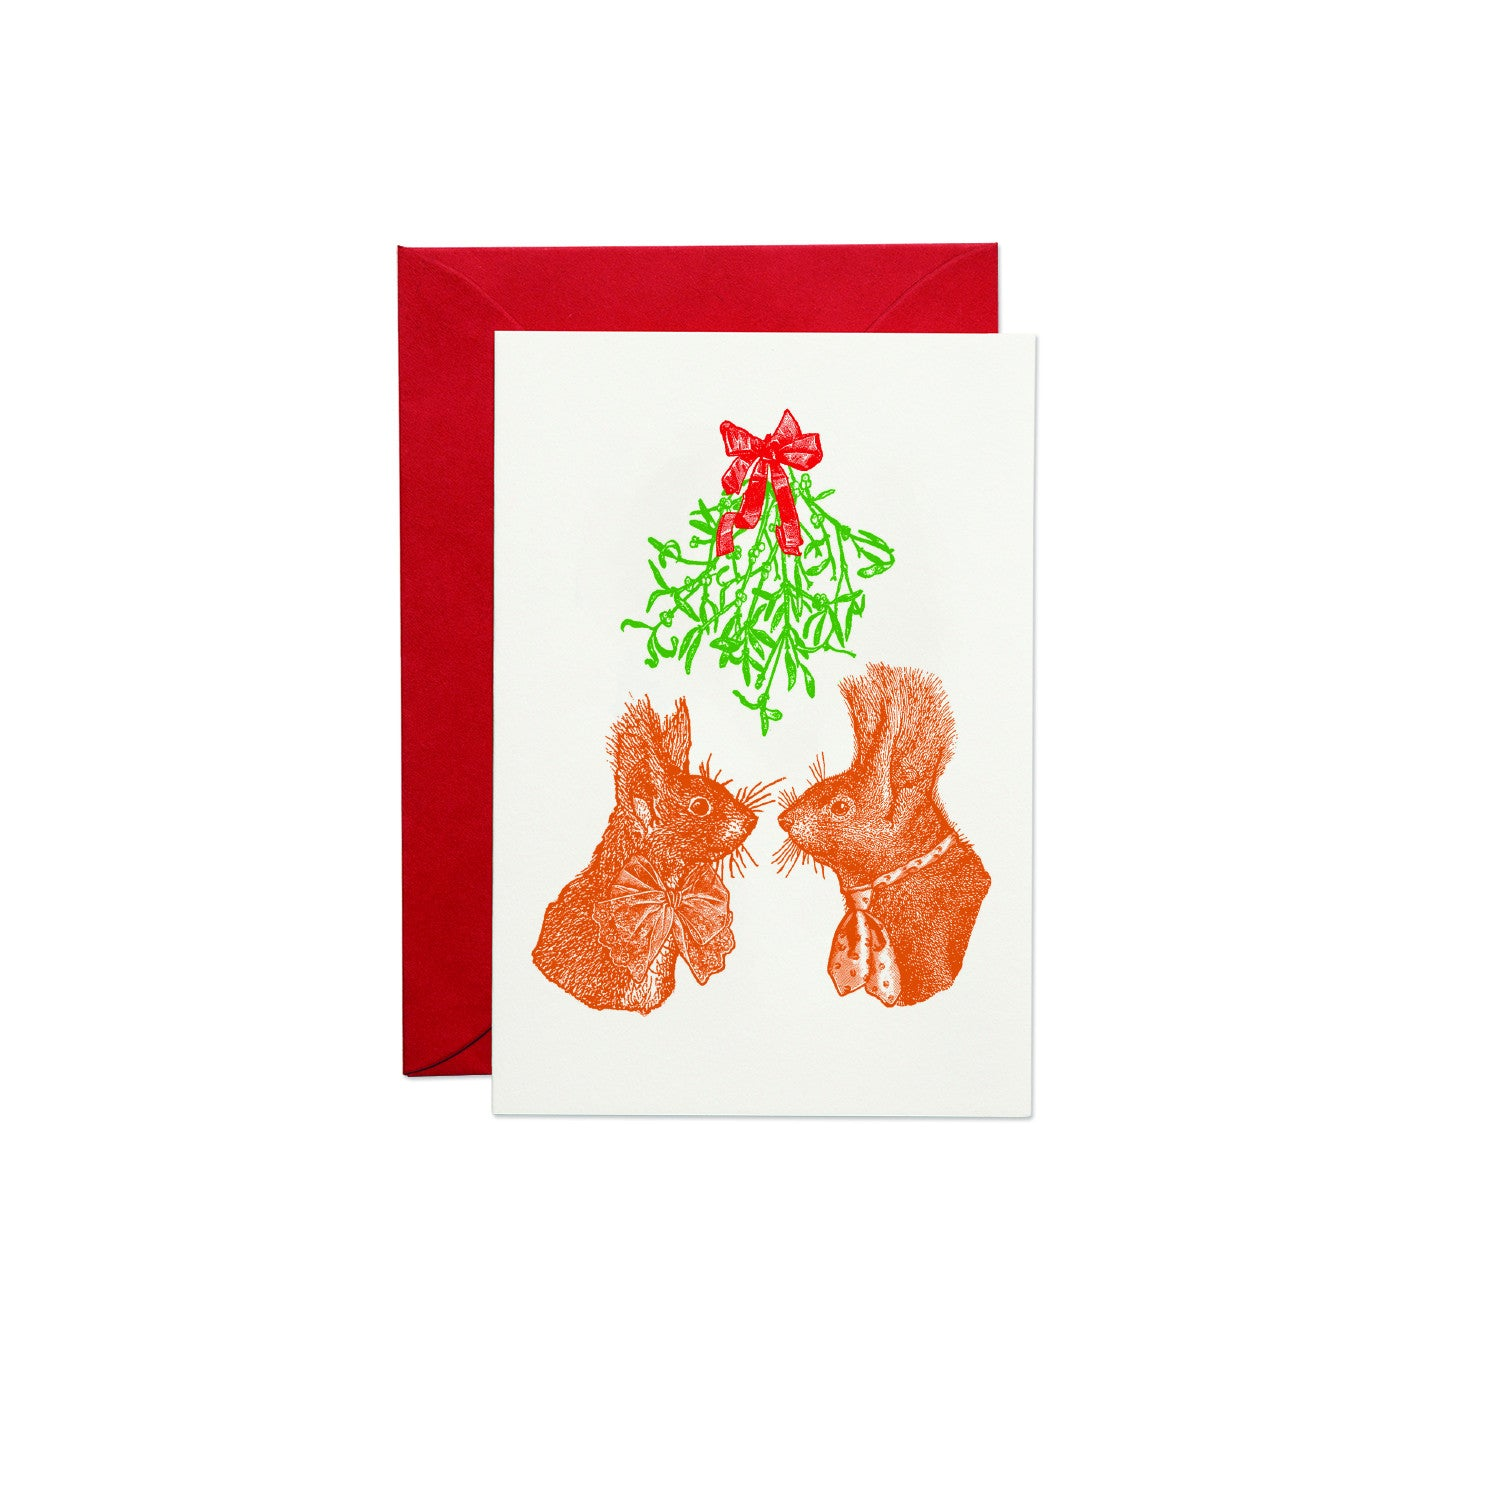 Christmas Squirrels Greeting Card (PACK OF 6)